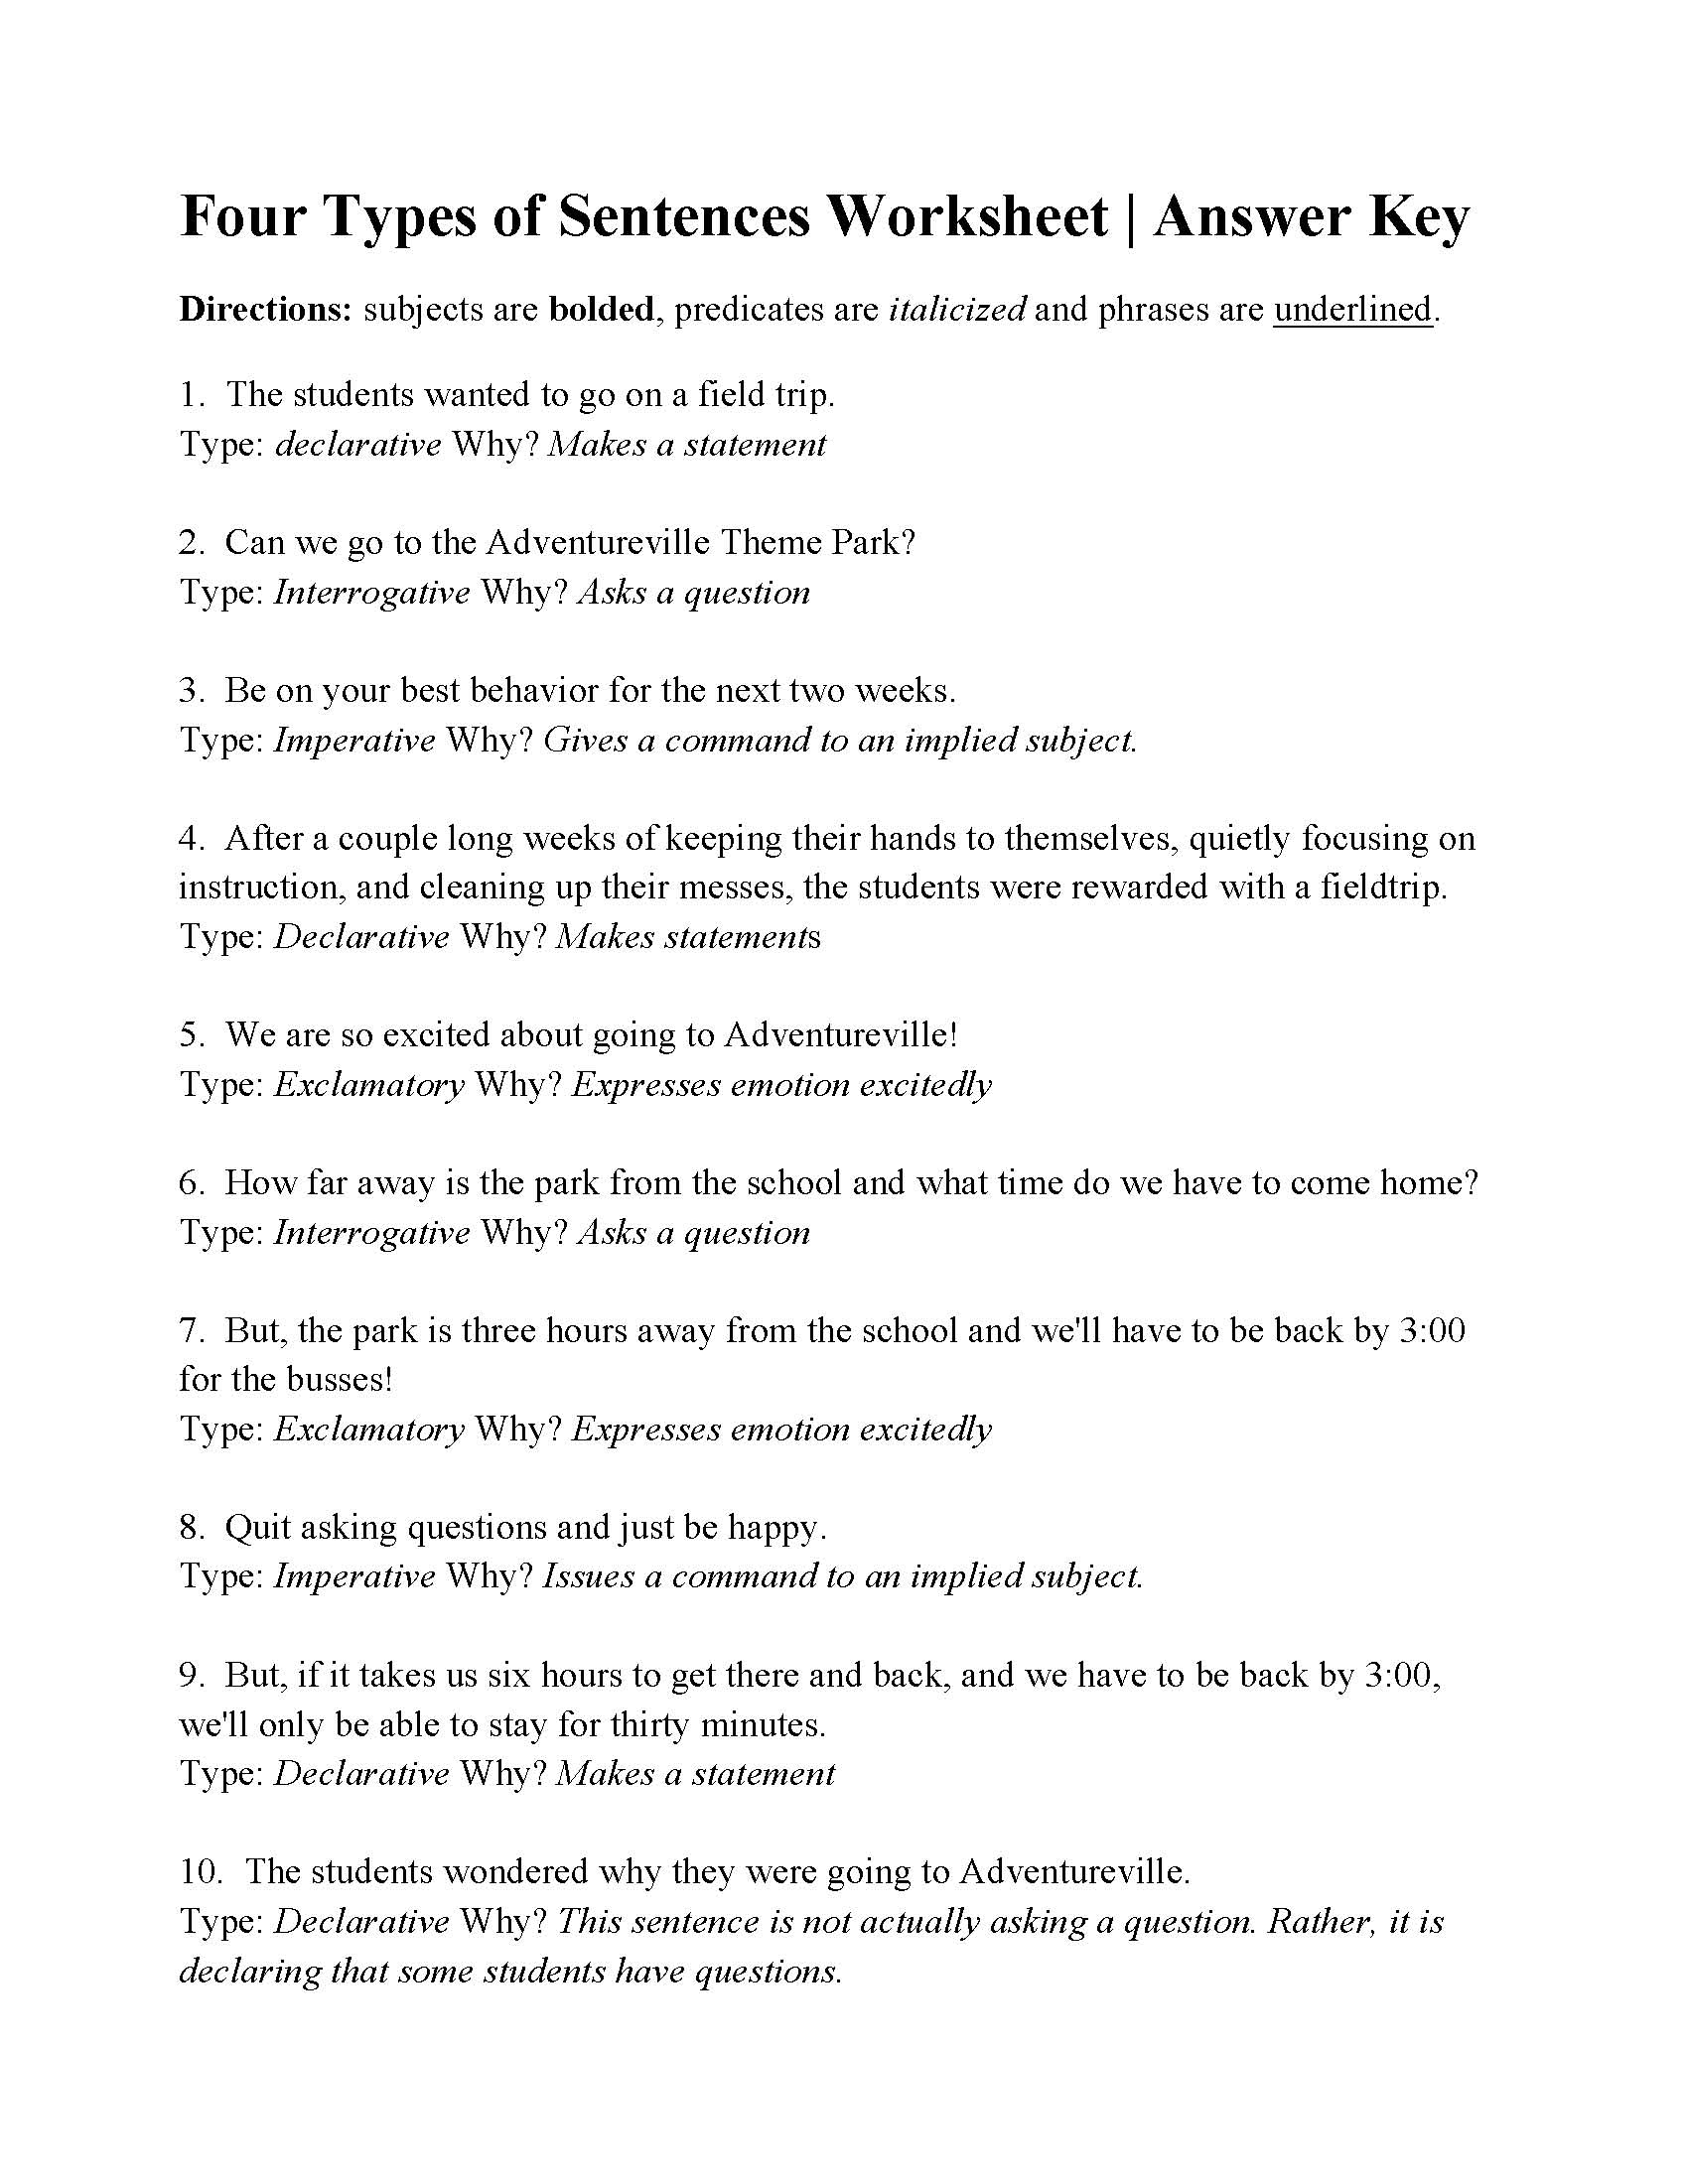 Worksheets 4 Types Of Sentences Worksheet Babyhunters